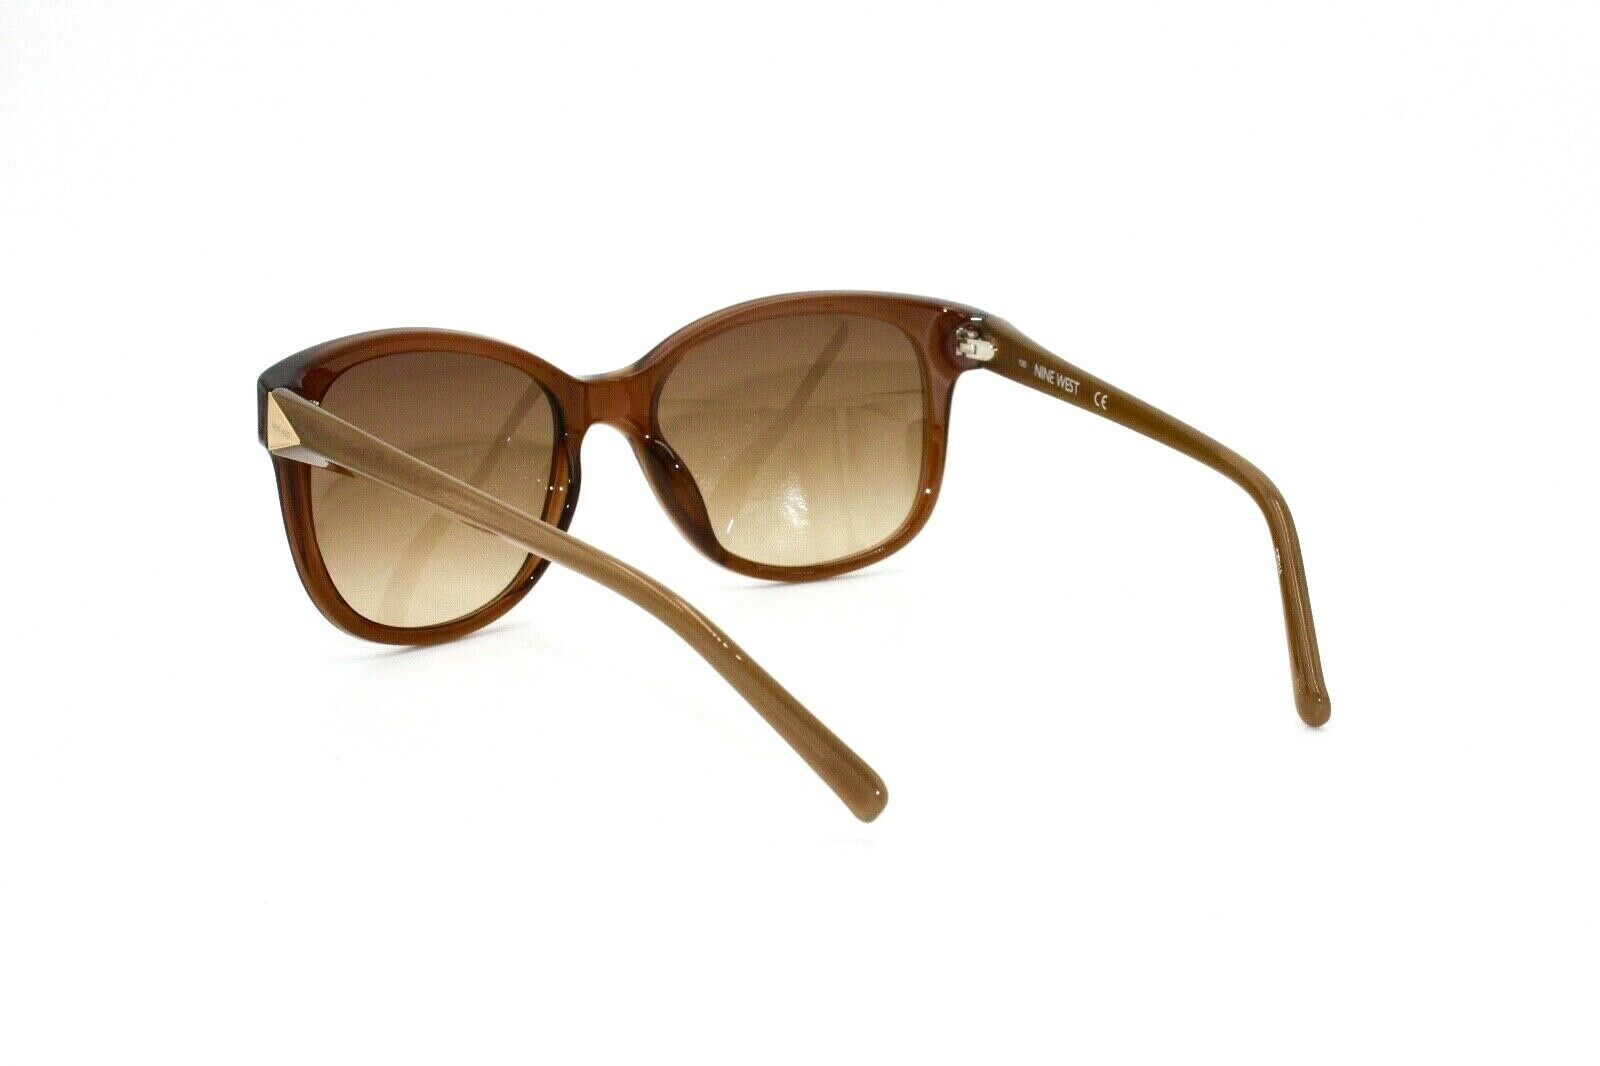 Nine West Sunglasses NW570S 210 54 18 130 - Mydesigneroptic